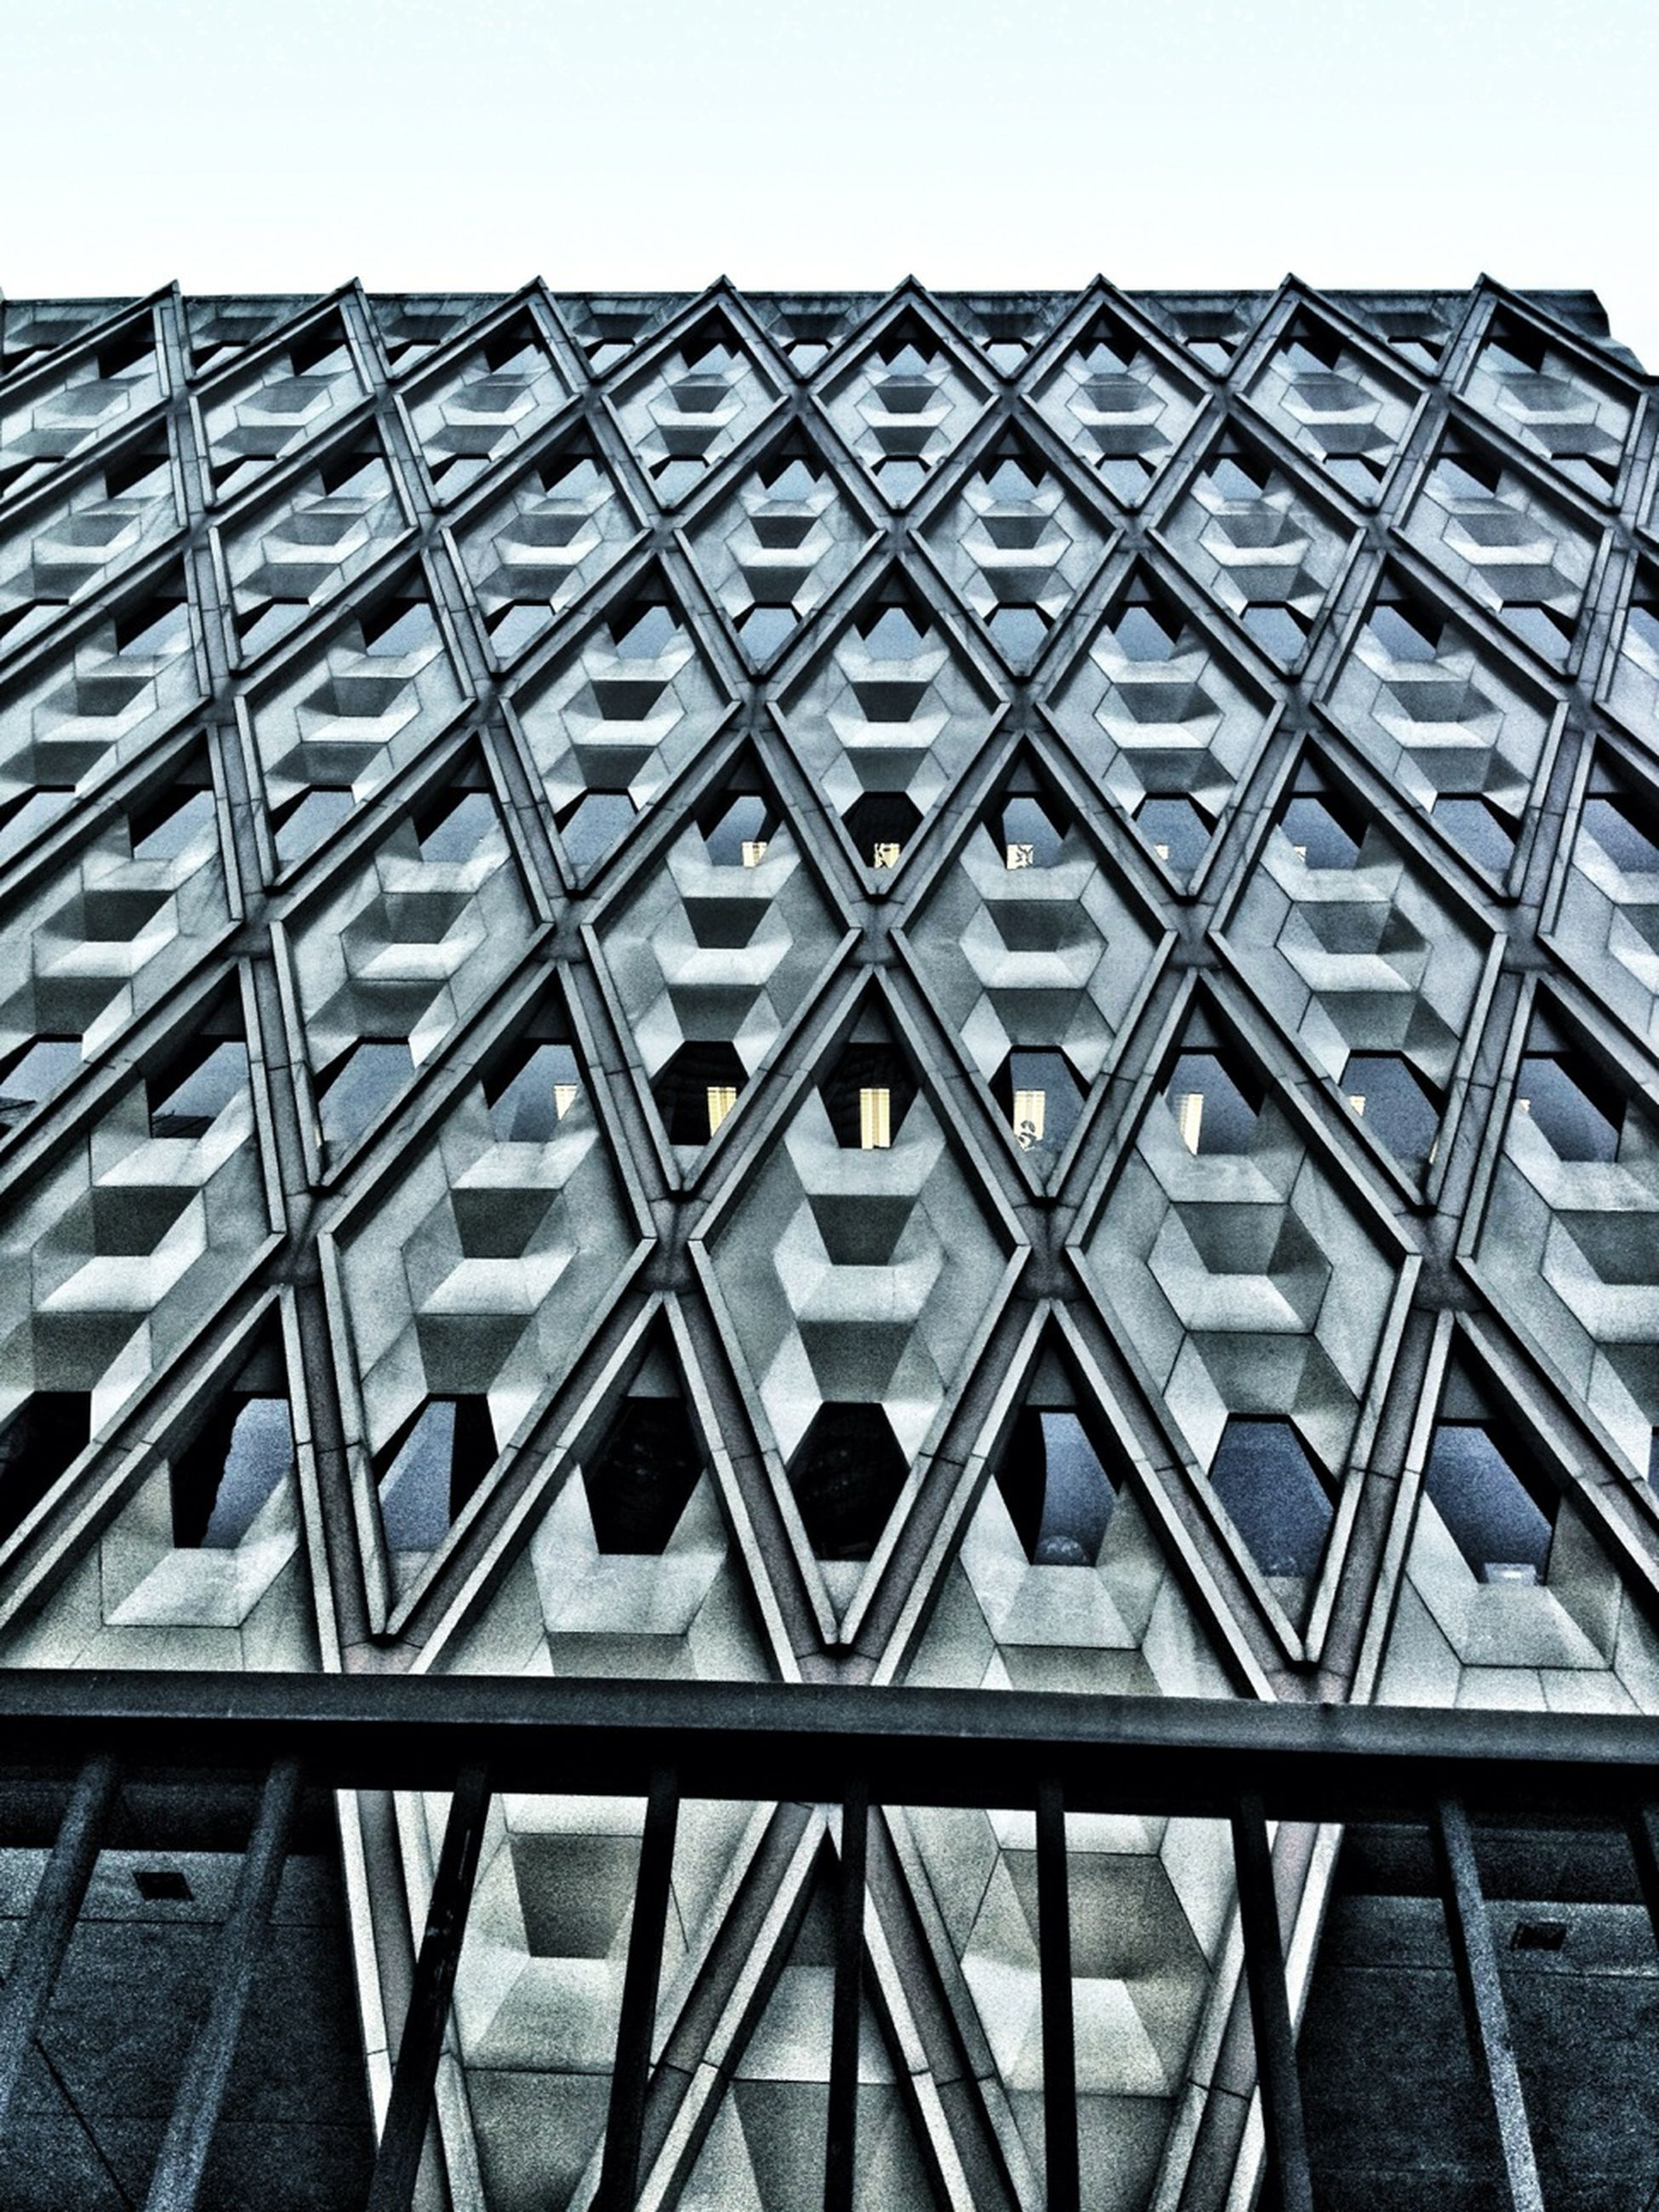 architecture, built structure, low angle view, building exterior, pattern, repetition, design, clear sky, architectural feature, modern, geometric shape, building, day, no people, sky, outdoors, in a row, metal, city, window